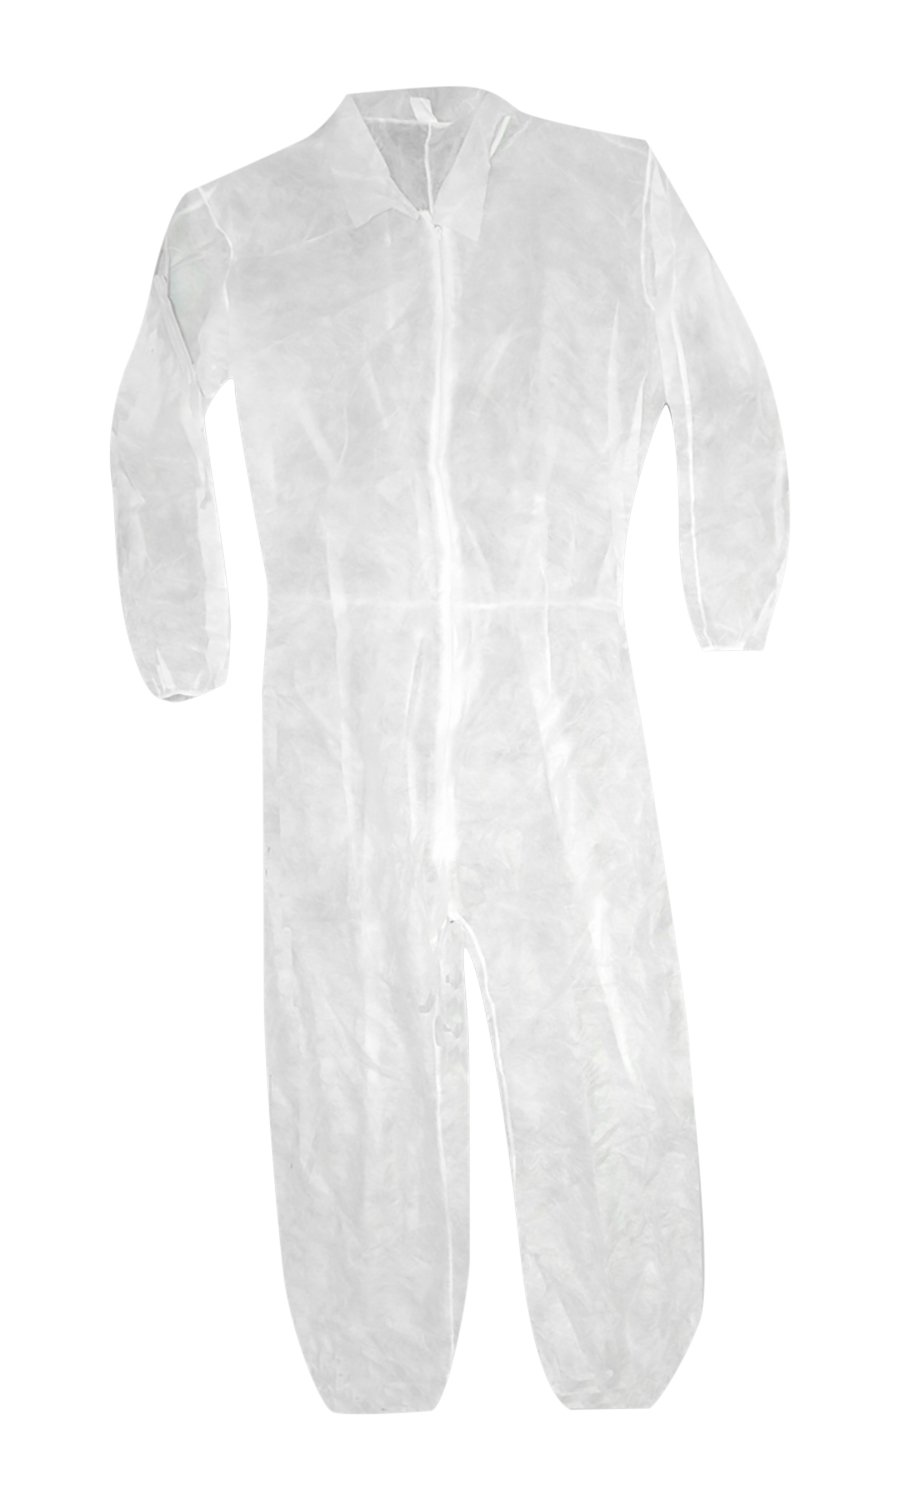 Trimaco Heavyweight Polypropylene Coveralls with Elastic Back, Wrists and Ankles